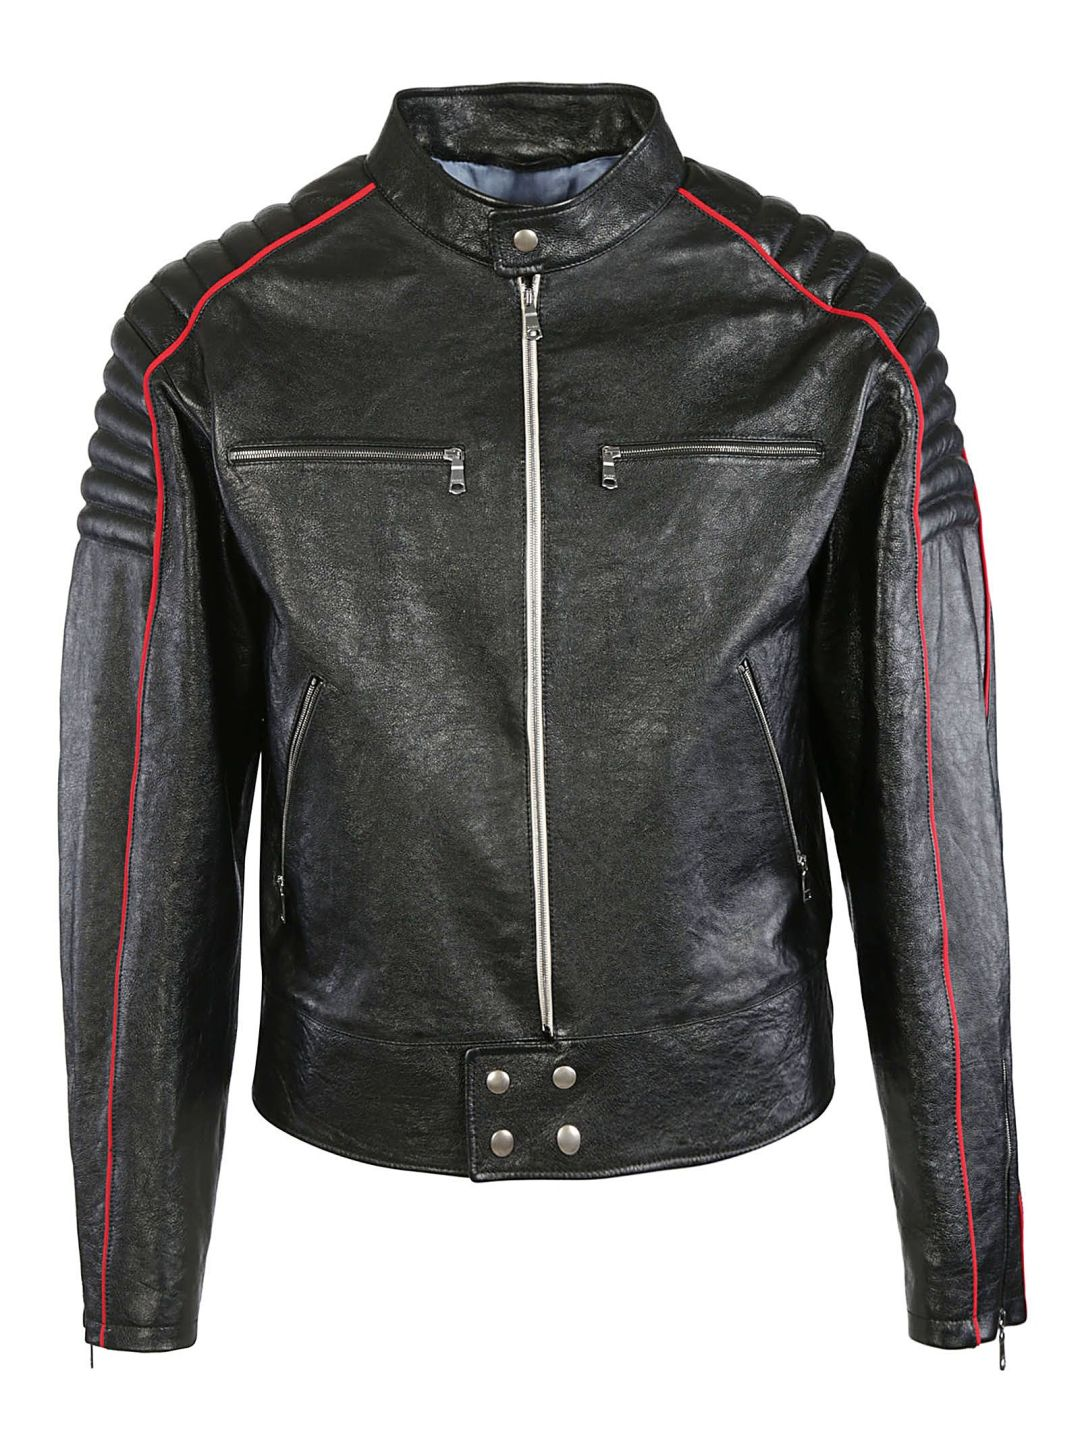 a4a6713f96e3b Gucci Logo Print Leather Jacket – Italist.com US – $4,445.32